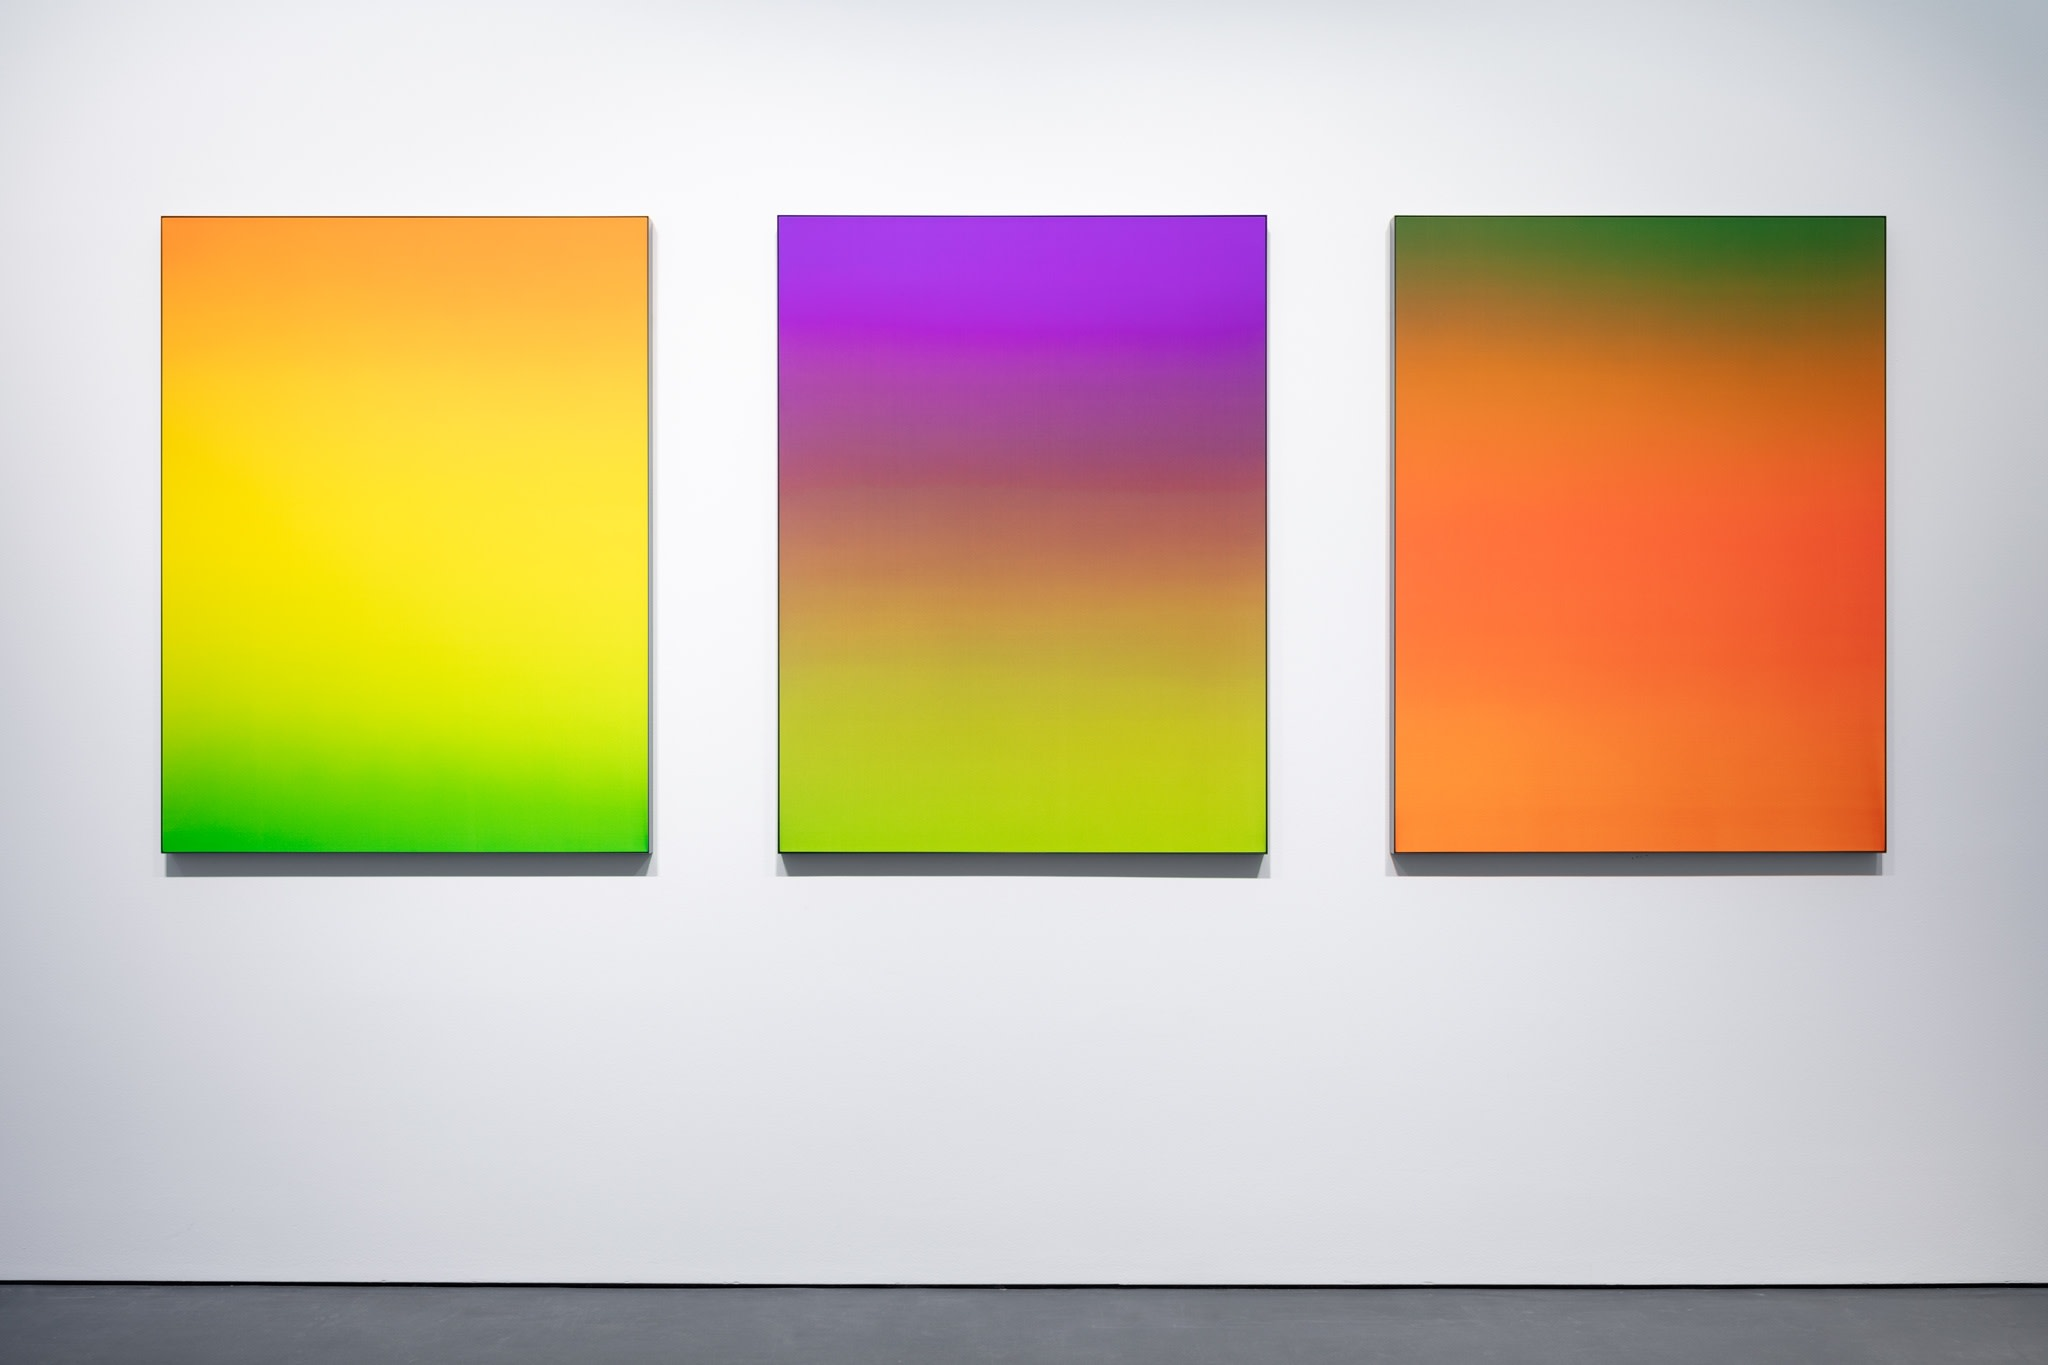 Each work: Matti Braun, Untitled, 2020, silk, dye, powder-coated aluminium, 130 x 100 cm (each). Photo © Andrea Rossetti